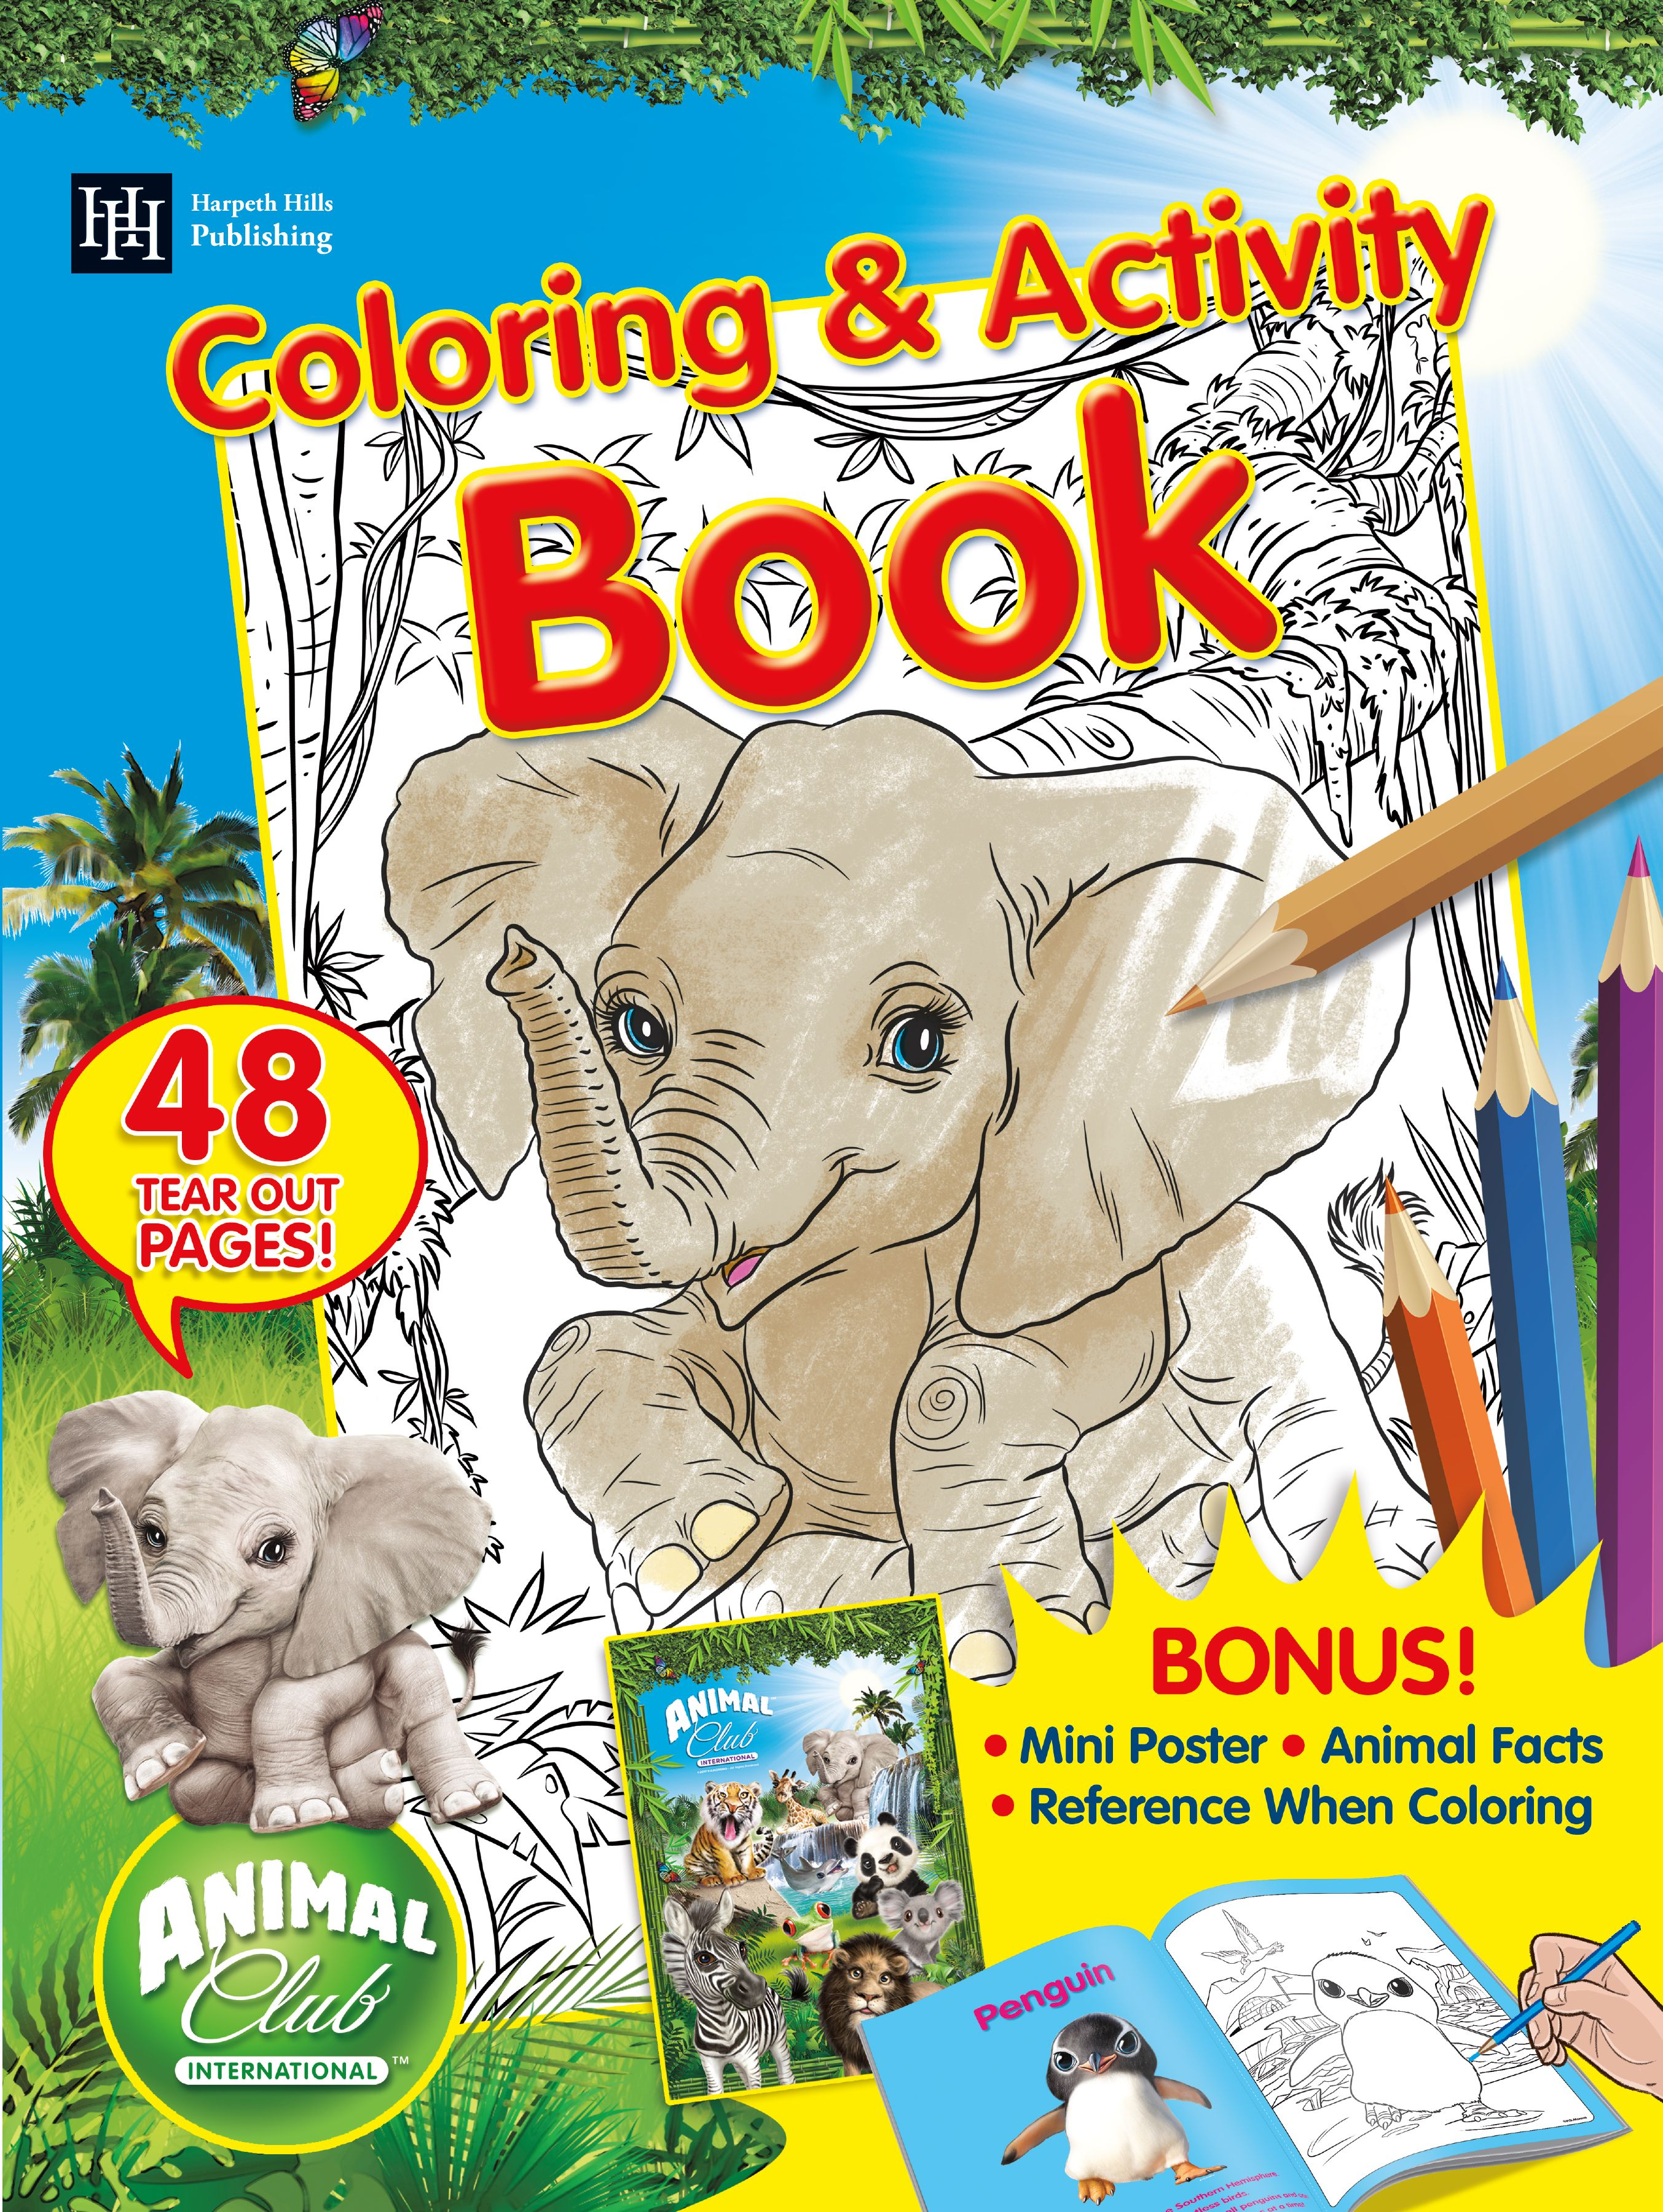 visit the website to purchase this new childrenus coloring